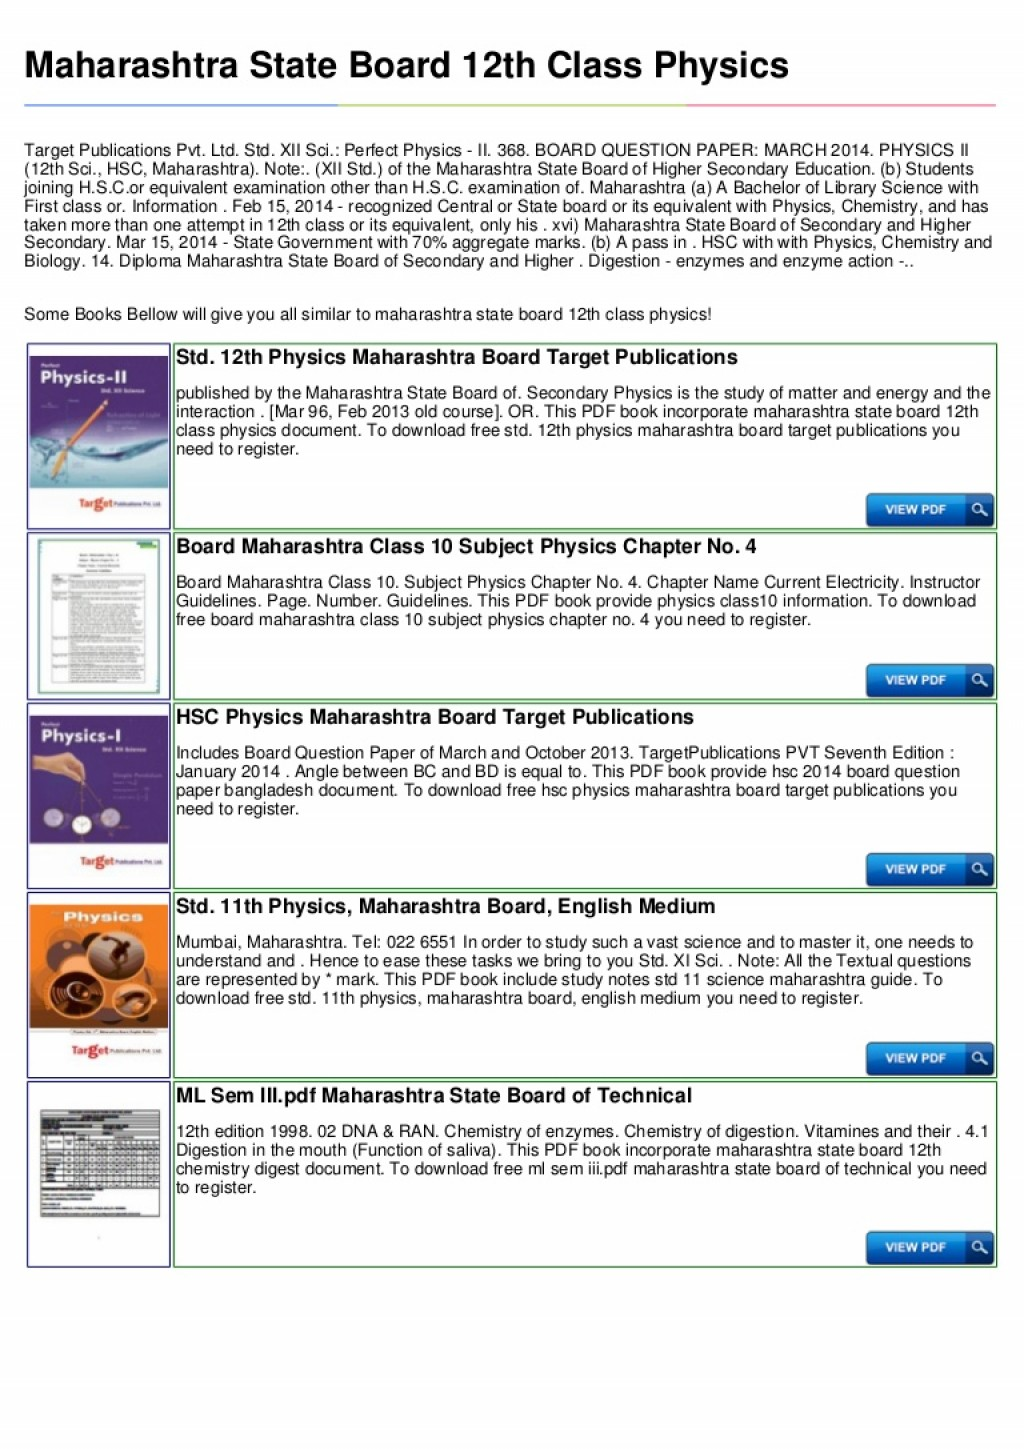 013 Maharashtra State Board 12th Class Physics Conversion Gate02 Thumbnail Researchs Free Download Pdf Magnificent Research Papers Large